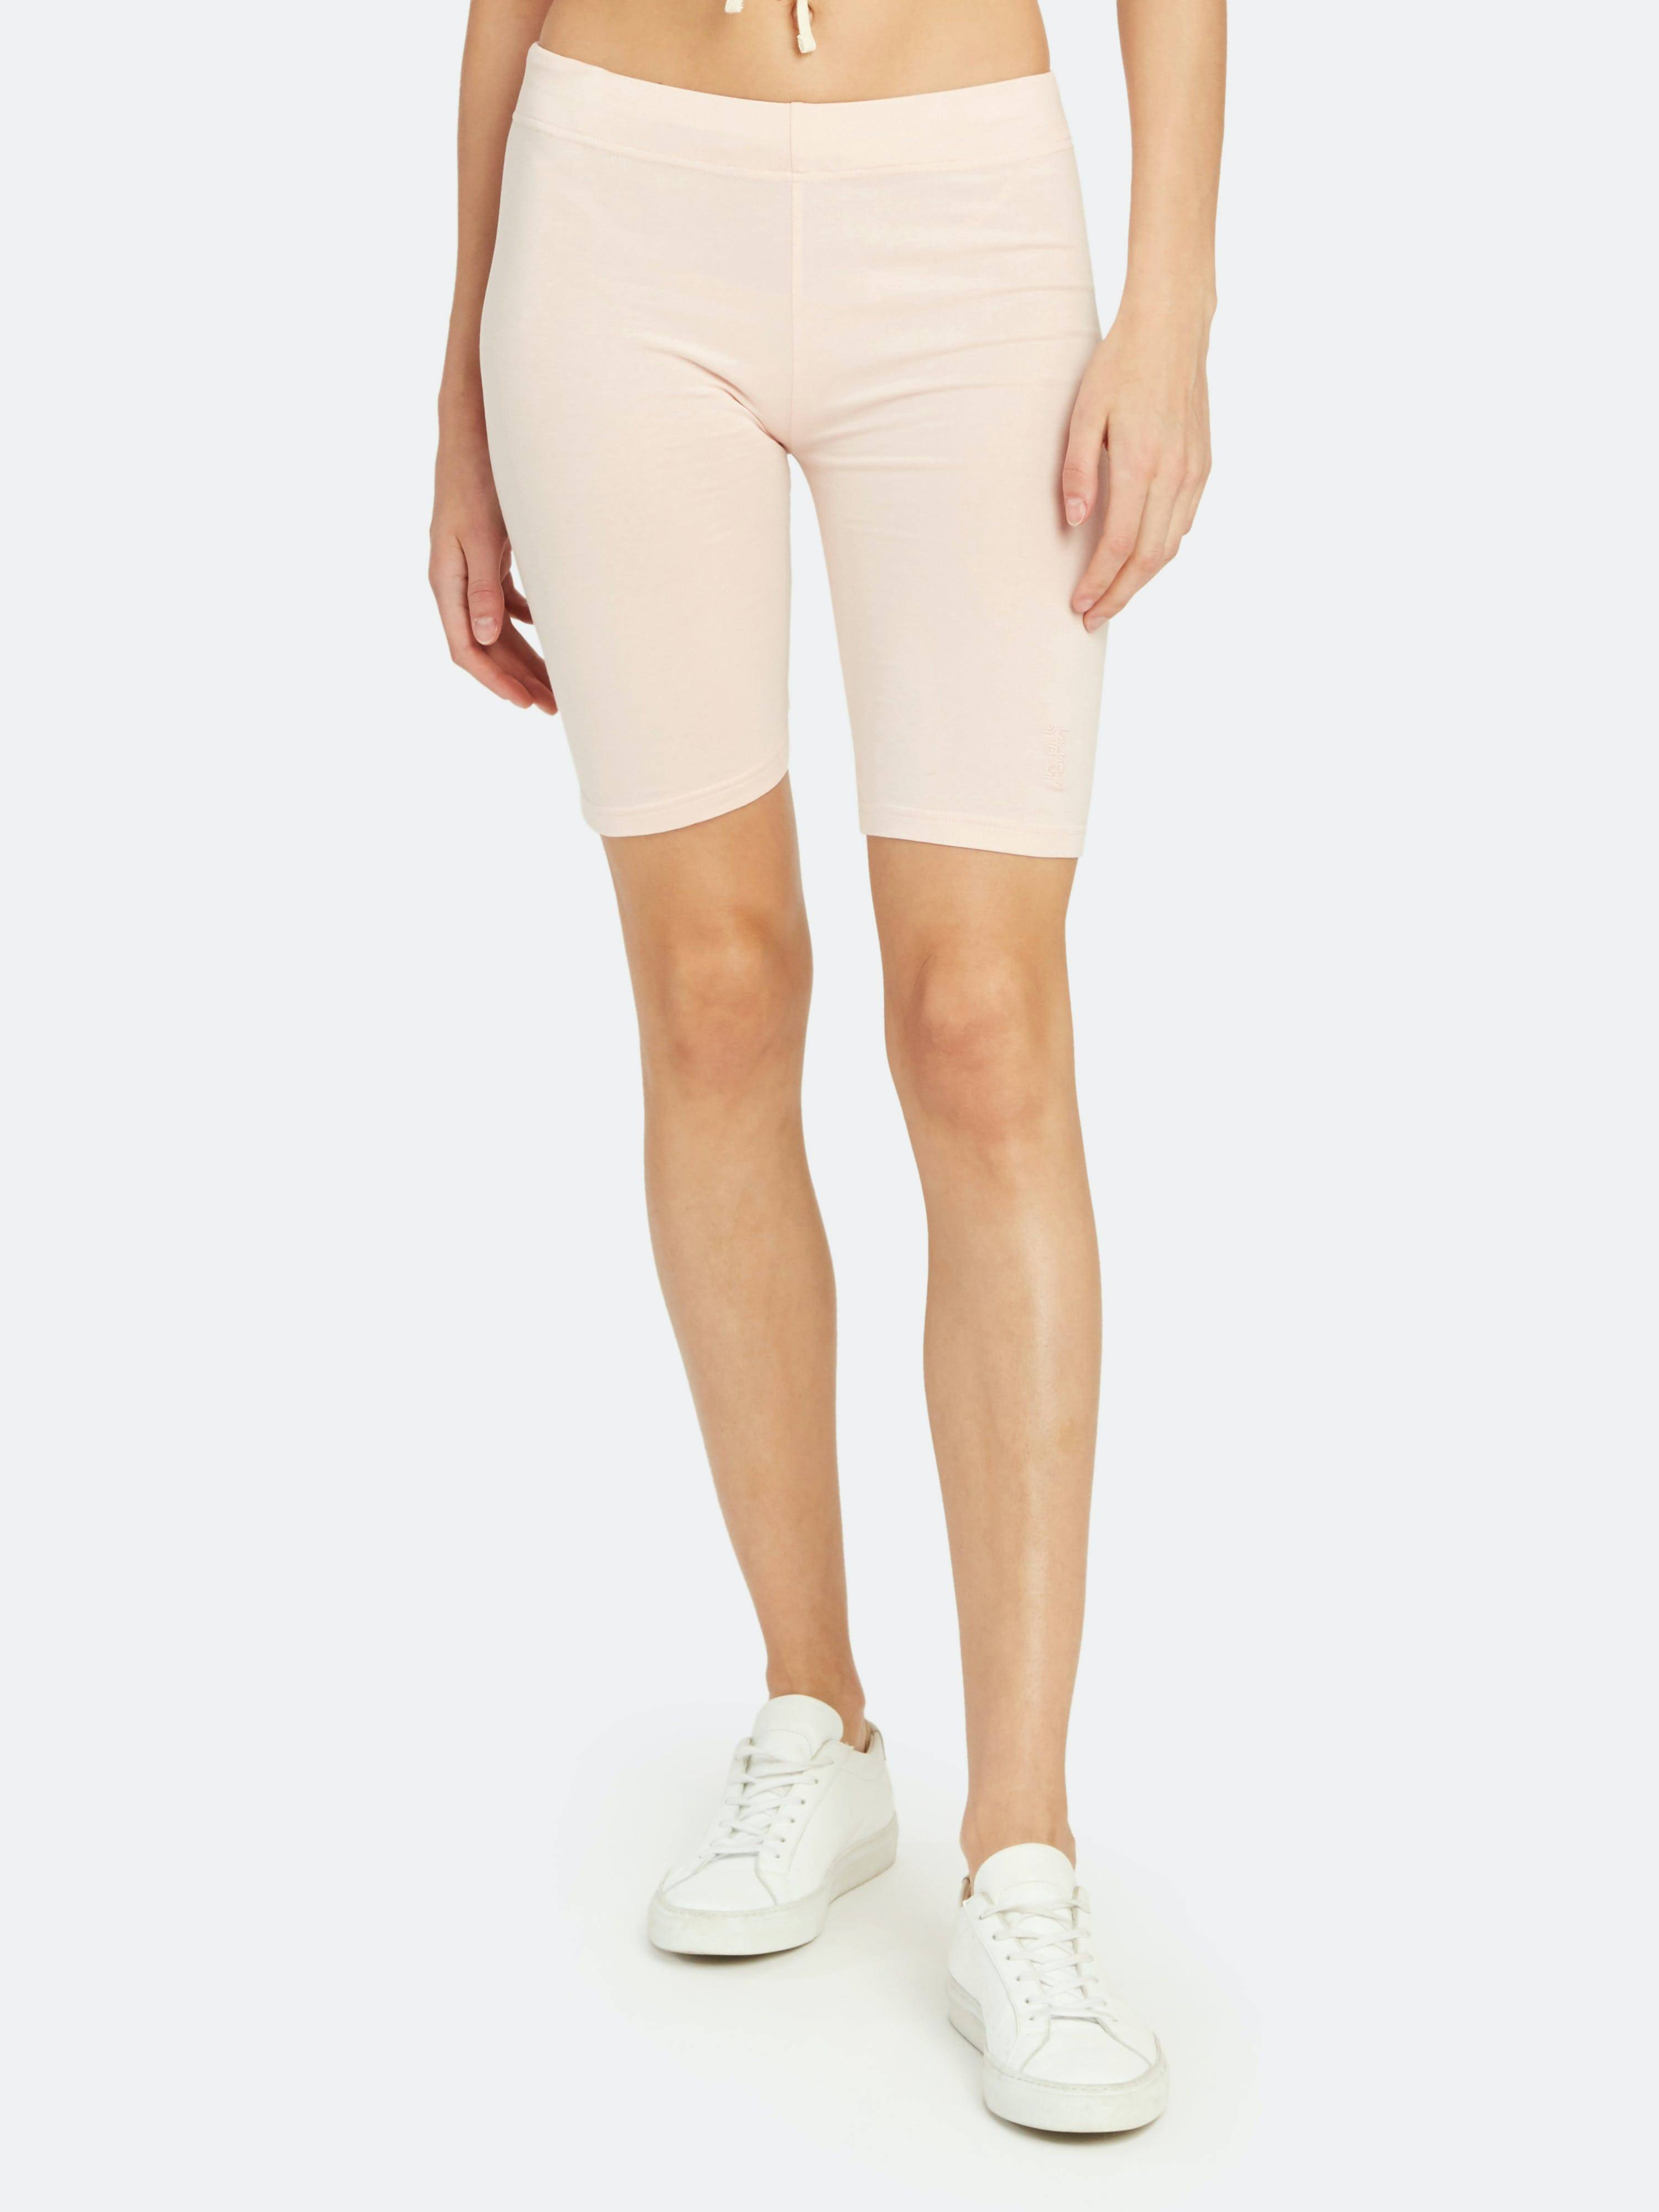 Les Girls Les Boys Tight Bike Shorts - M - Also in: L, XL, S, XS  - Pink